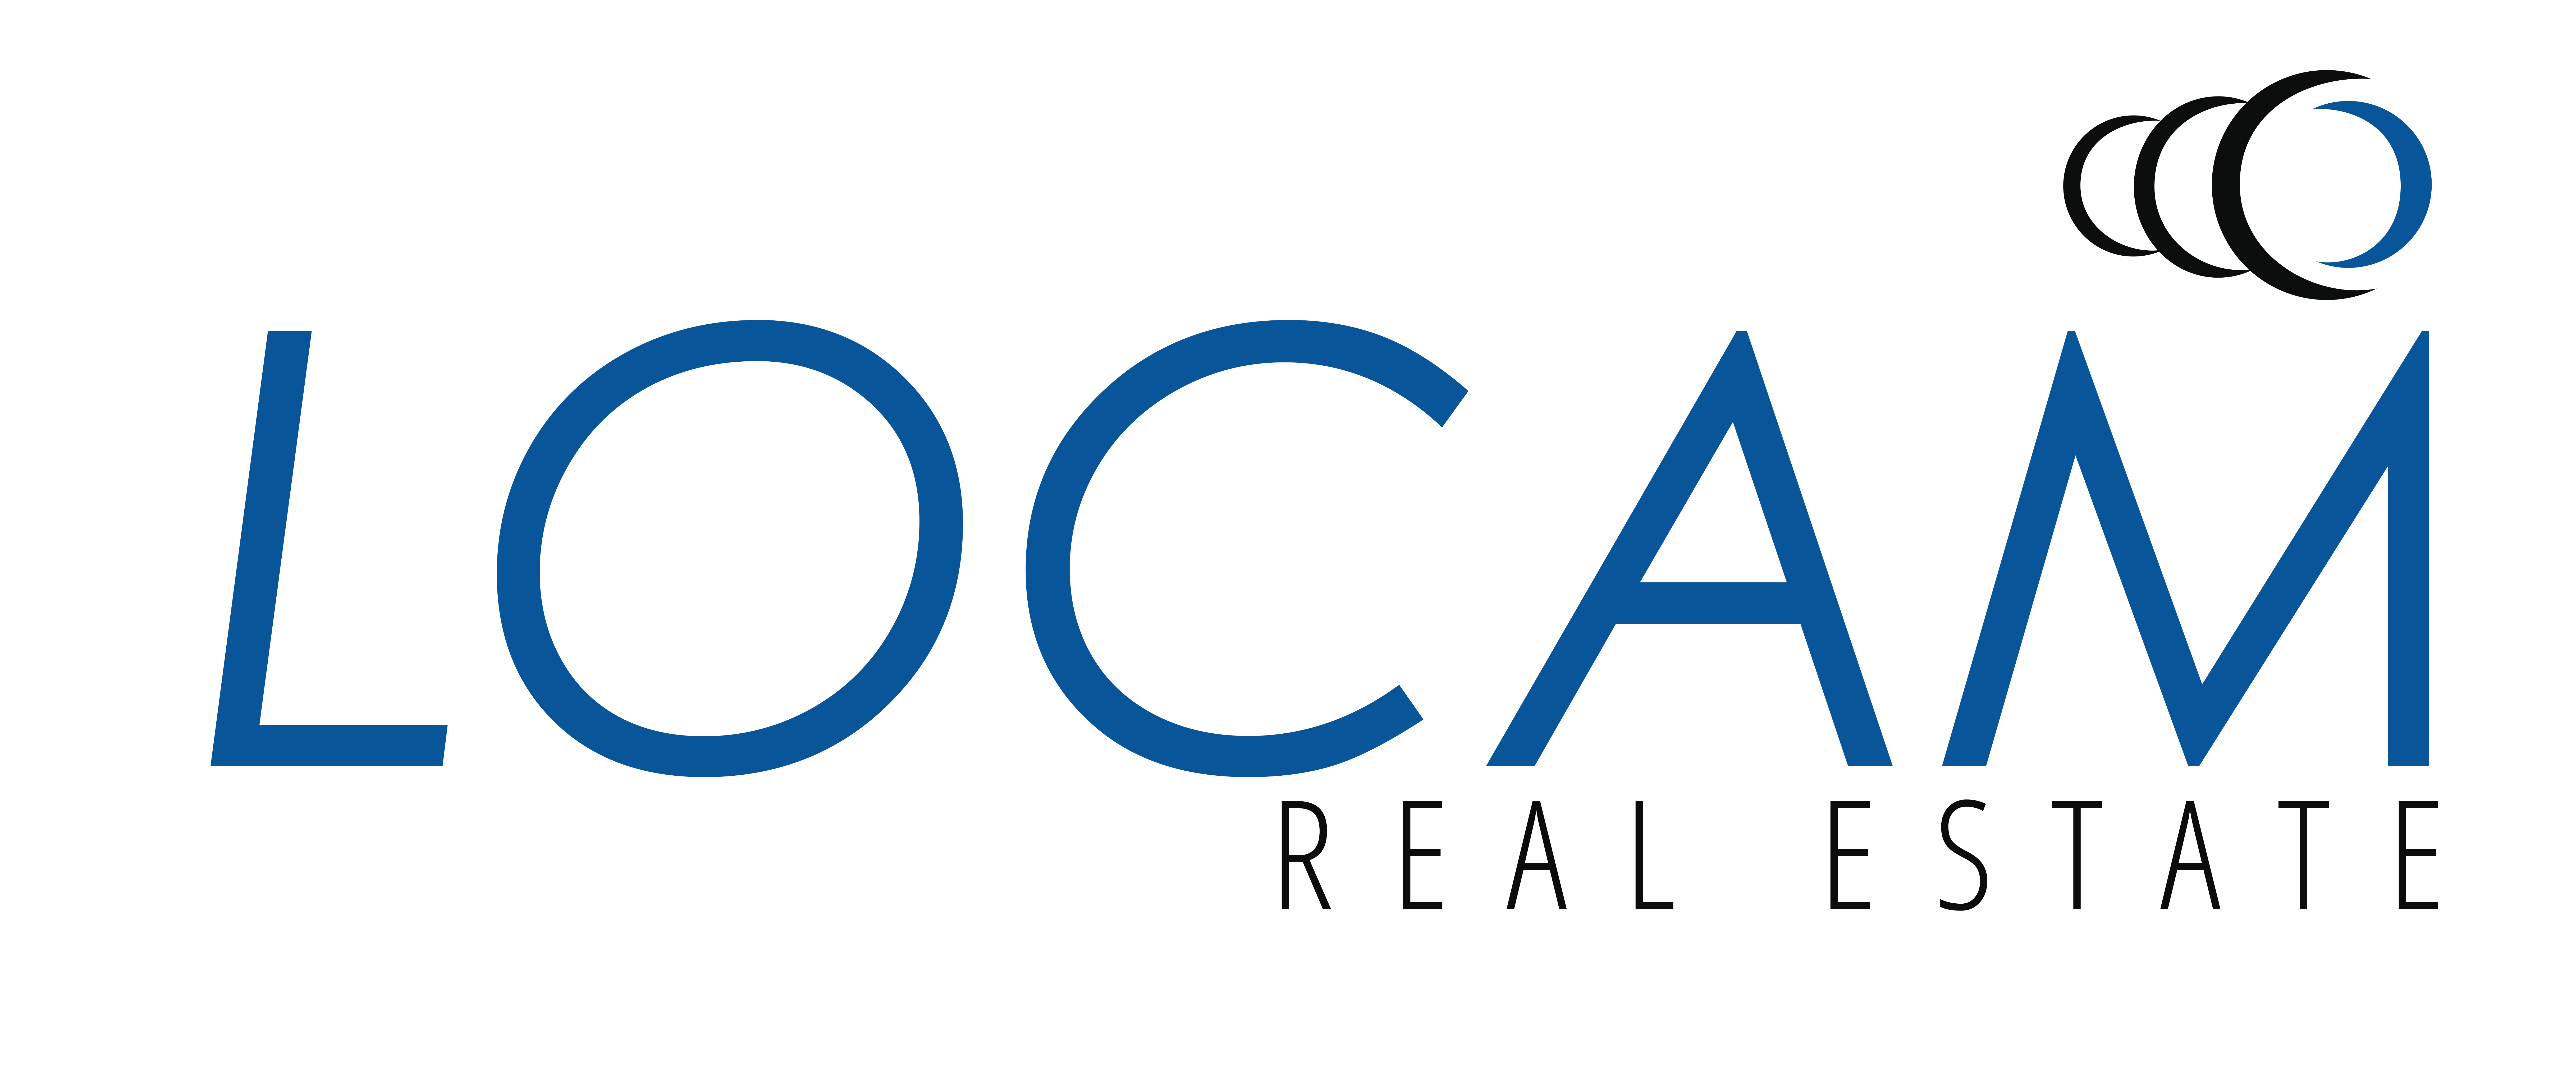 LOCAM_REAL_ESTATE_logo hd